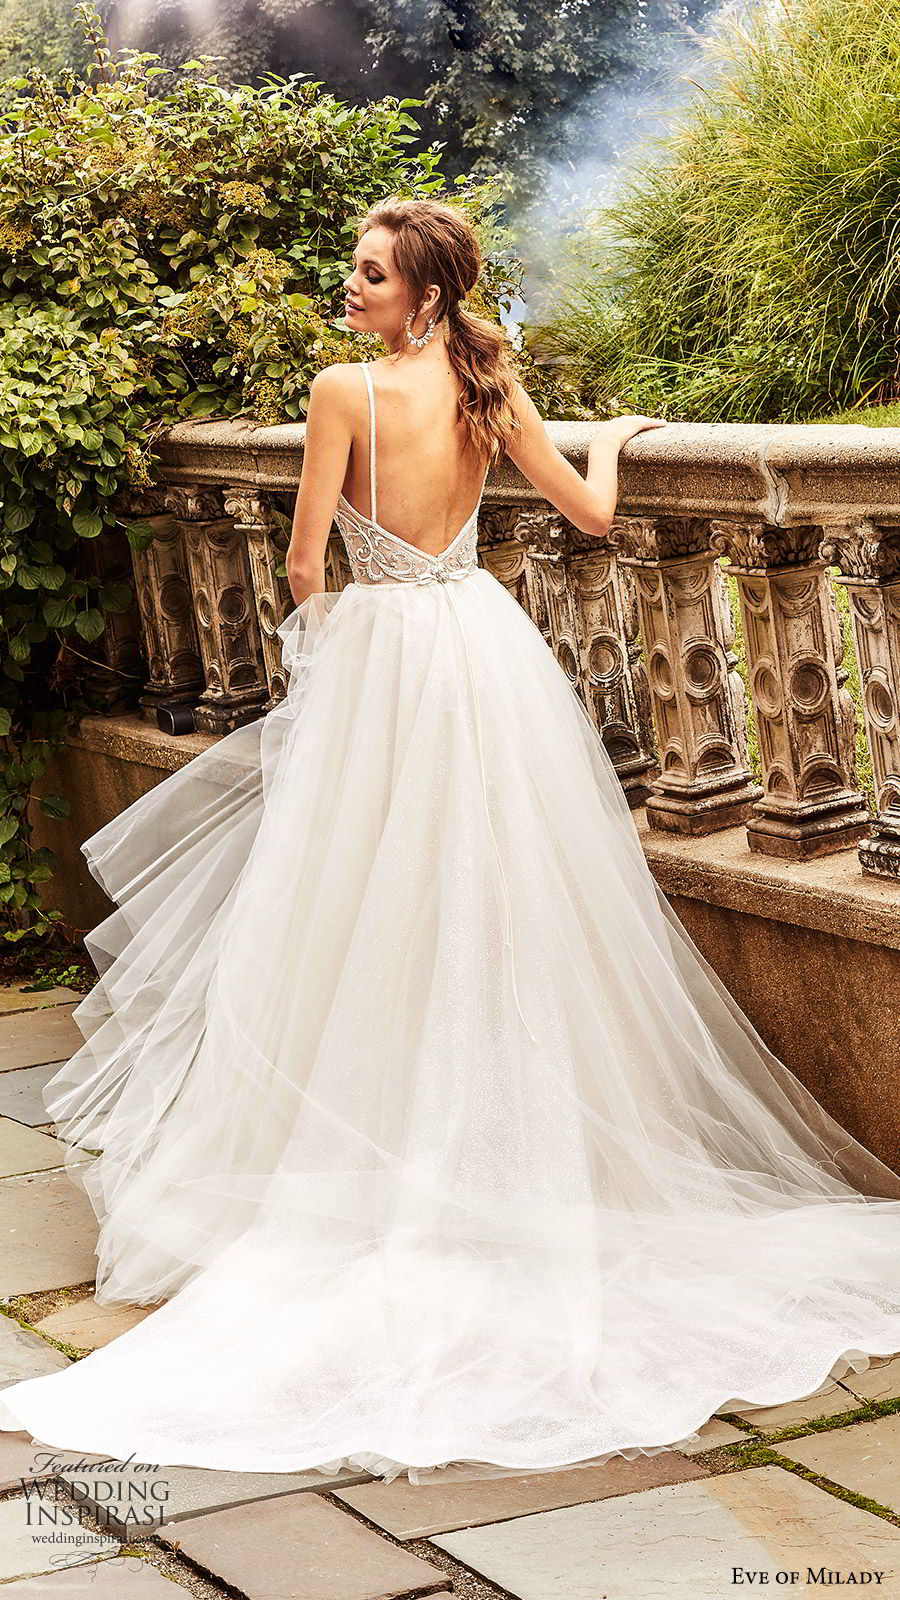 eve of milady fall 2018 bridal sleeveless thick straps deep v neck embellished bodice ball gown wedding dress chapel train romantic princess (2) bv